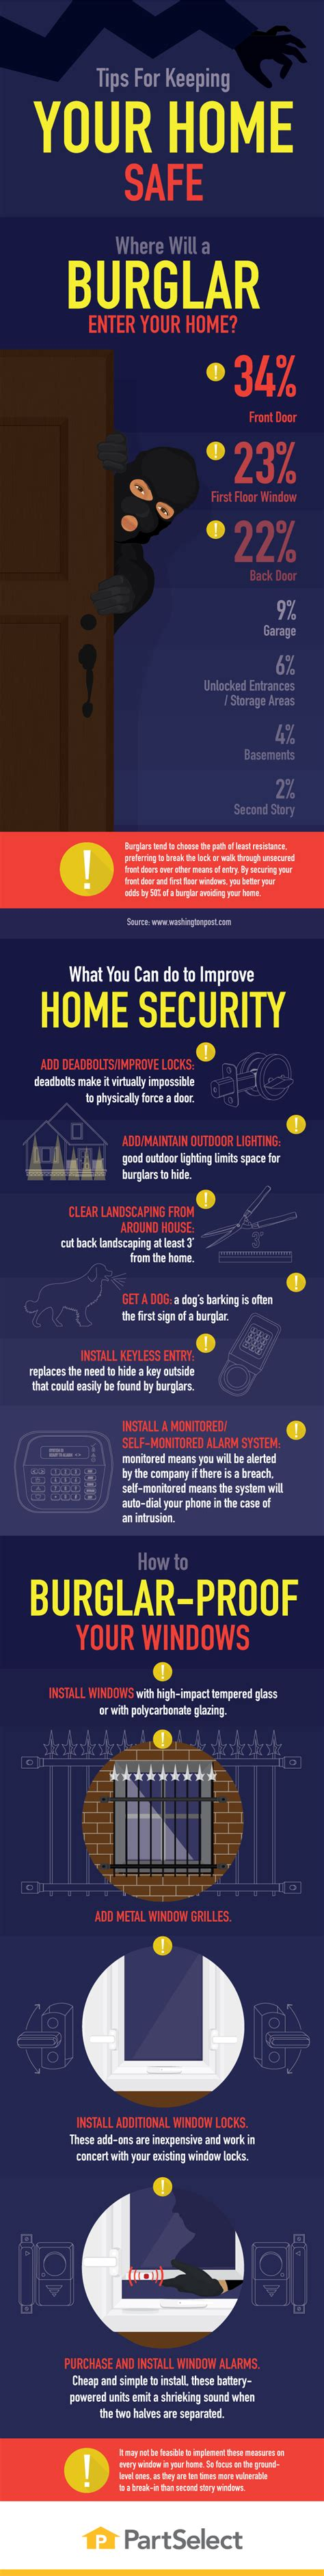 tips for make your home safe from burglars infographic